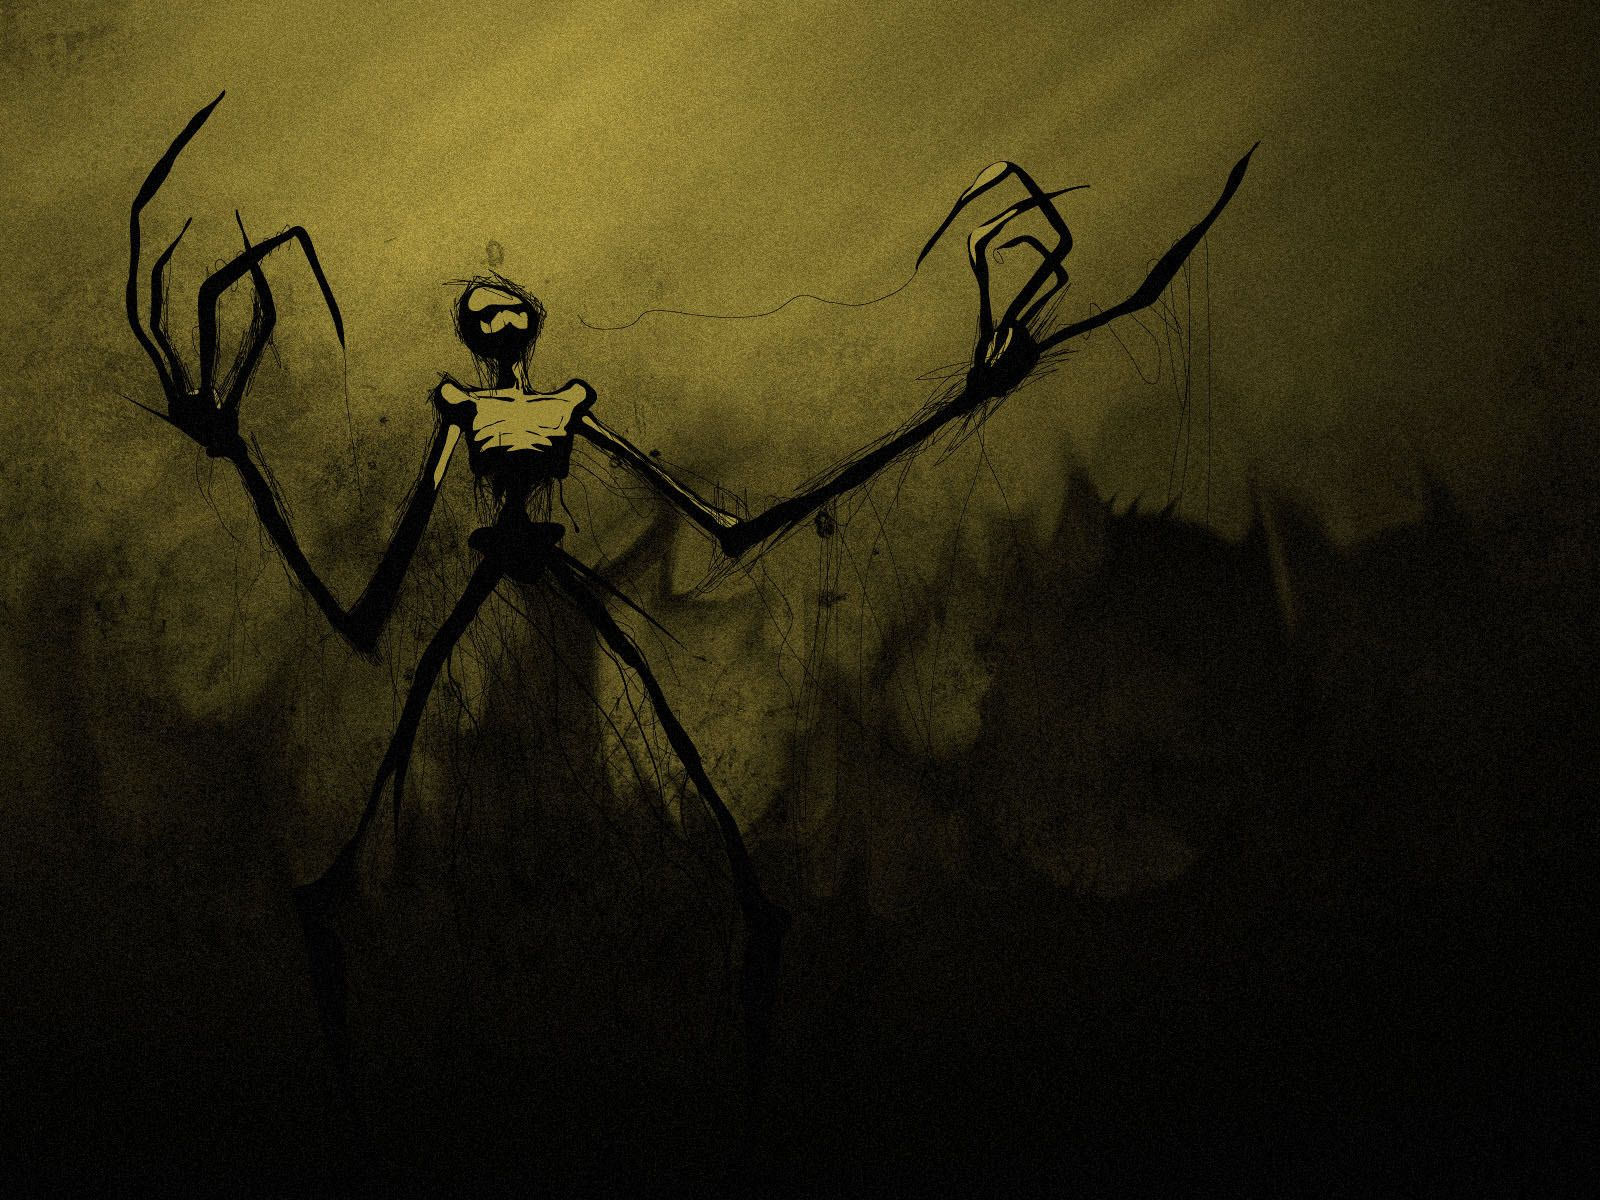 Scary Monster Wallpaper Thin With Long Arms In The Darkness